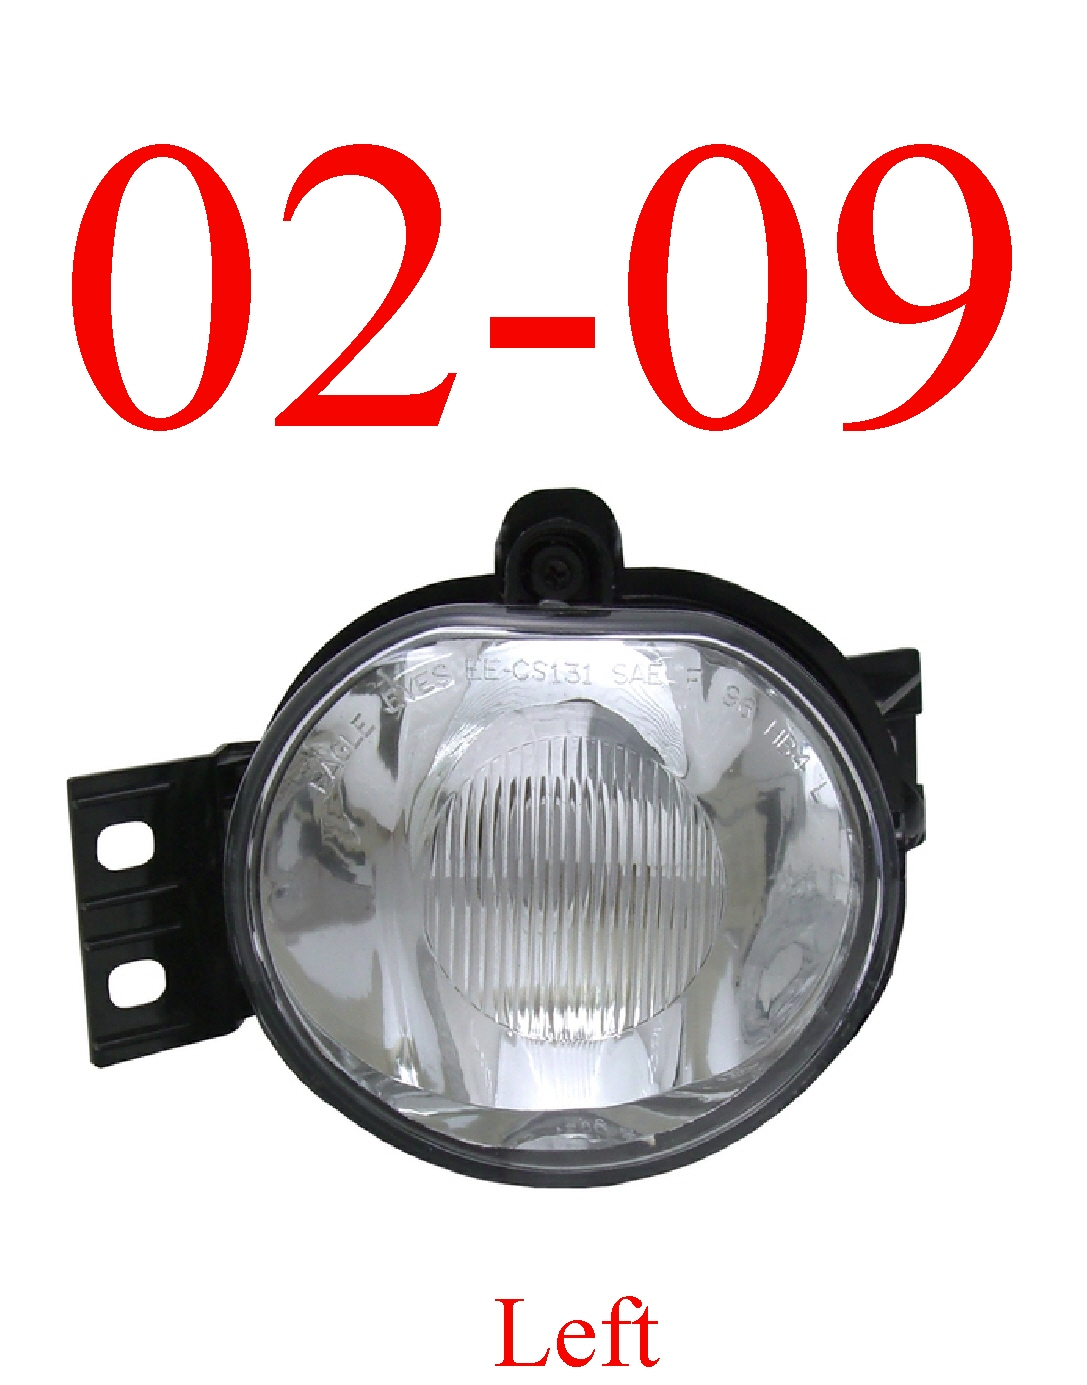 02-09 Dodge Left Fog Light Assembly